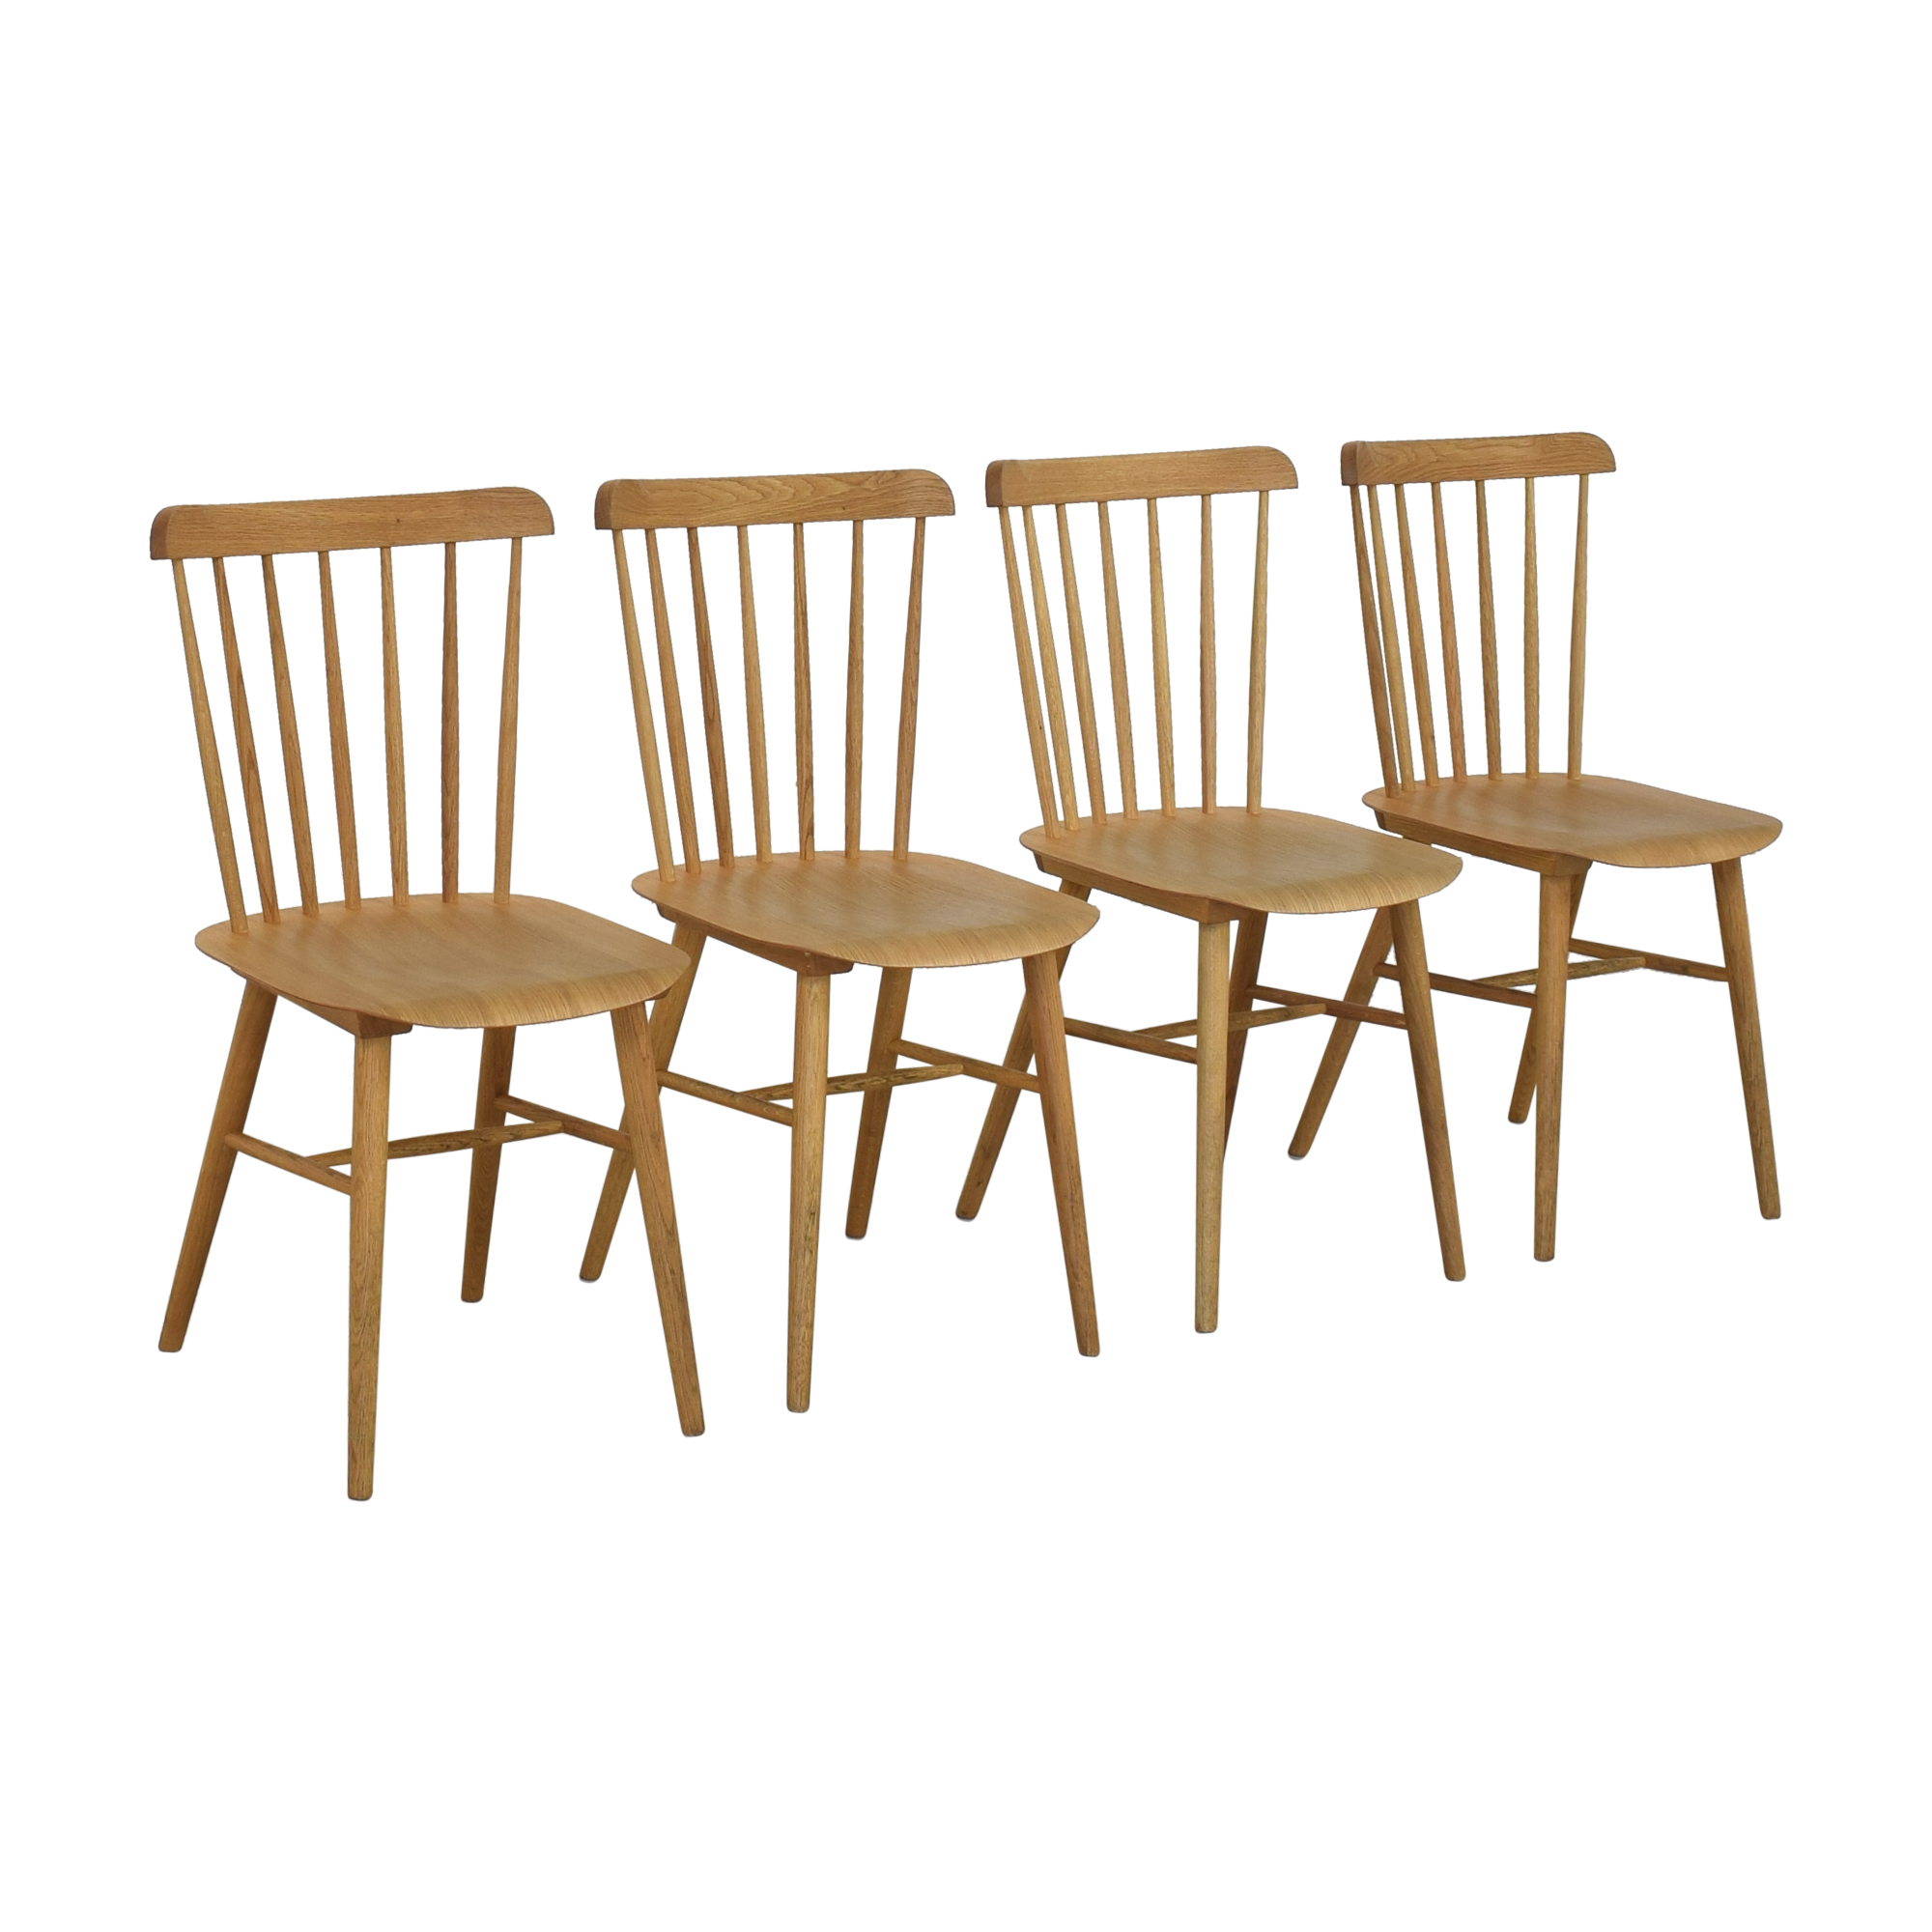 TON Ironica Dining Side Chairs / Chairs